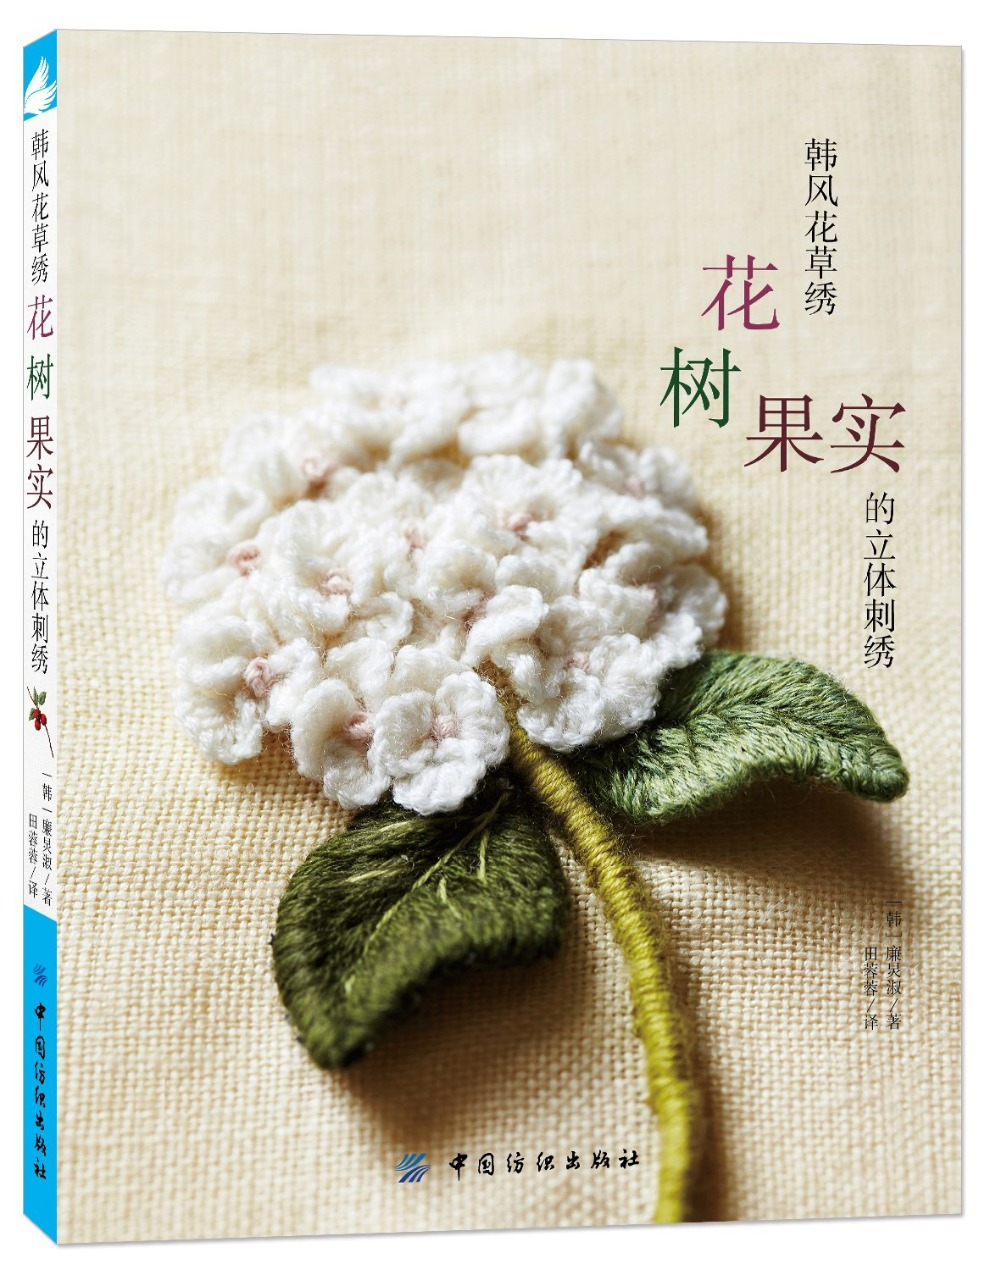 A three-dimensional embroidery of flowers, trees, and fruits / Chinese embroidery Handmade Art Design BookA three-dimensional embroidery of flowers, trees, and fruits / Chinese embroidery Handmade Art Design Book